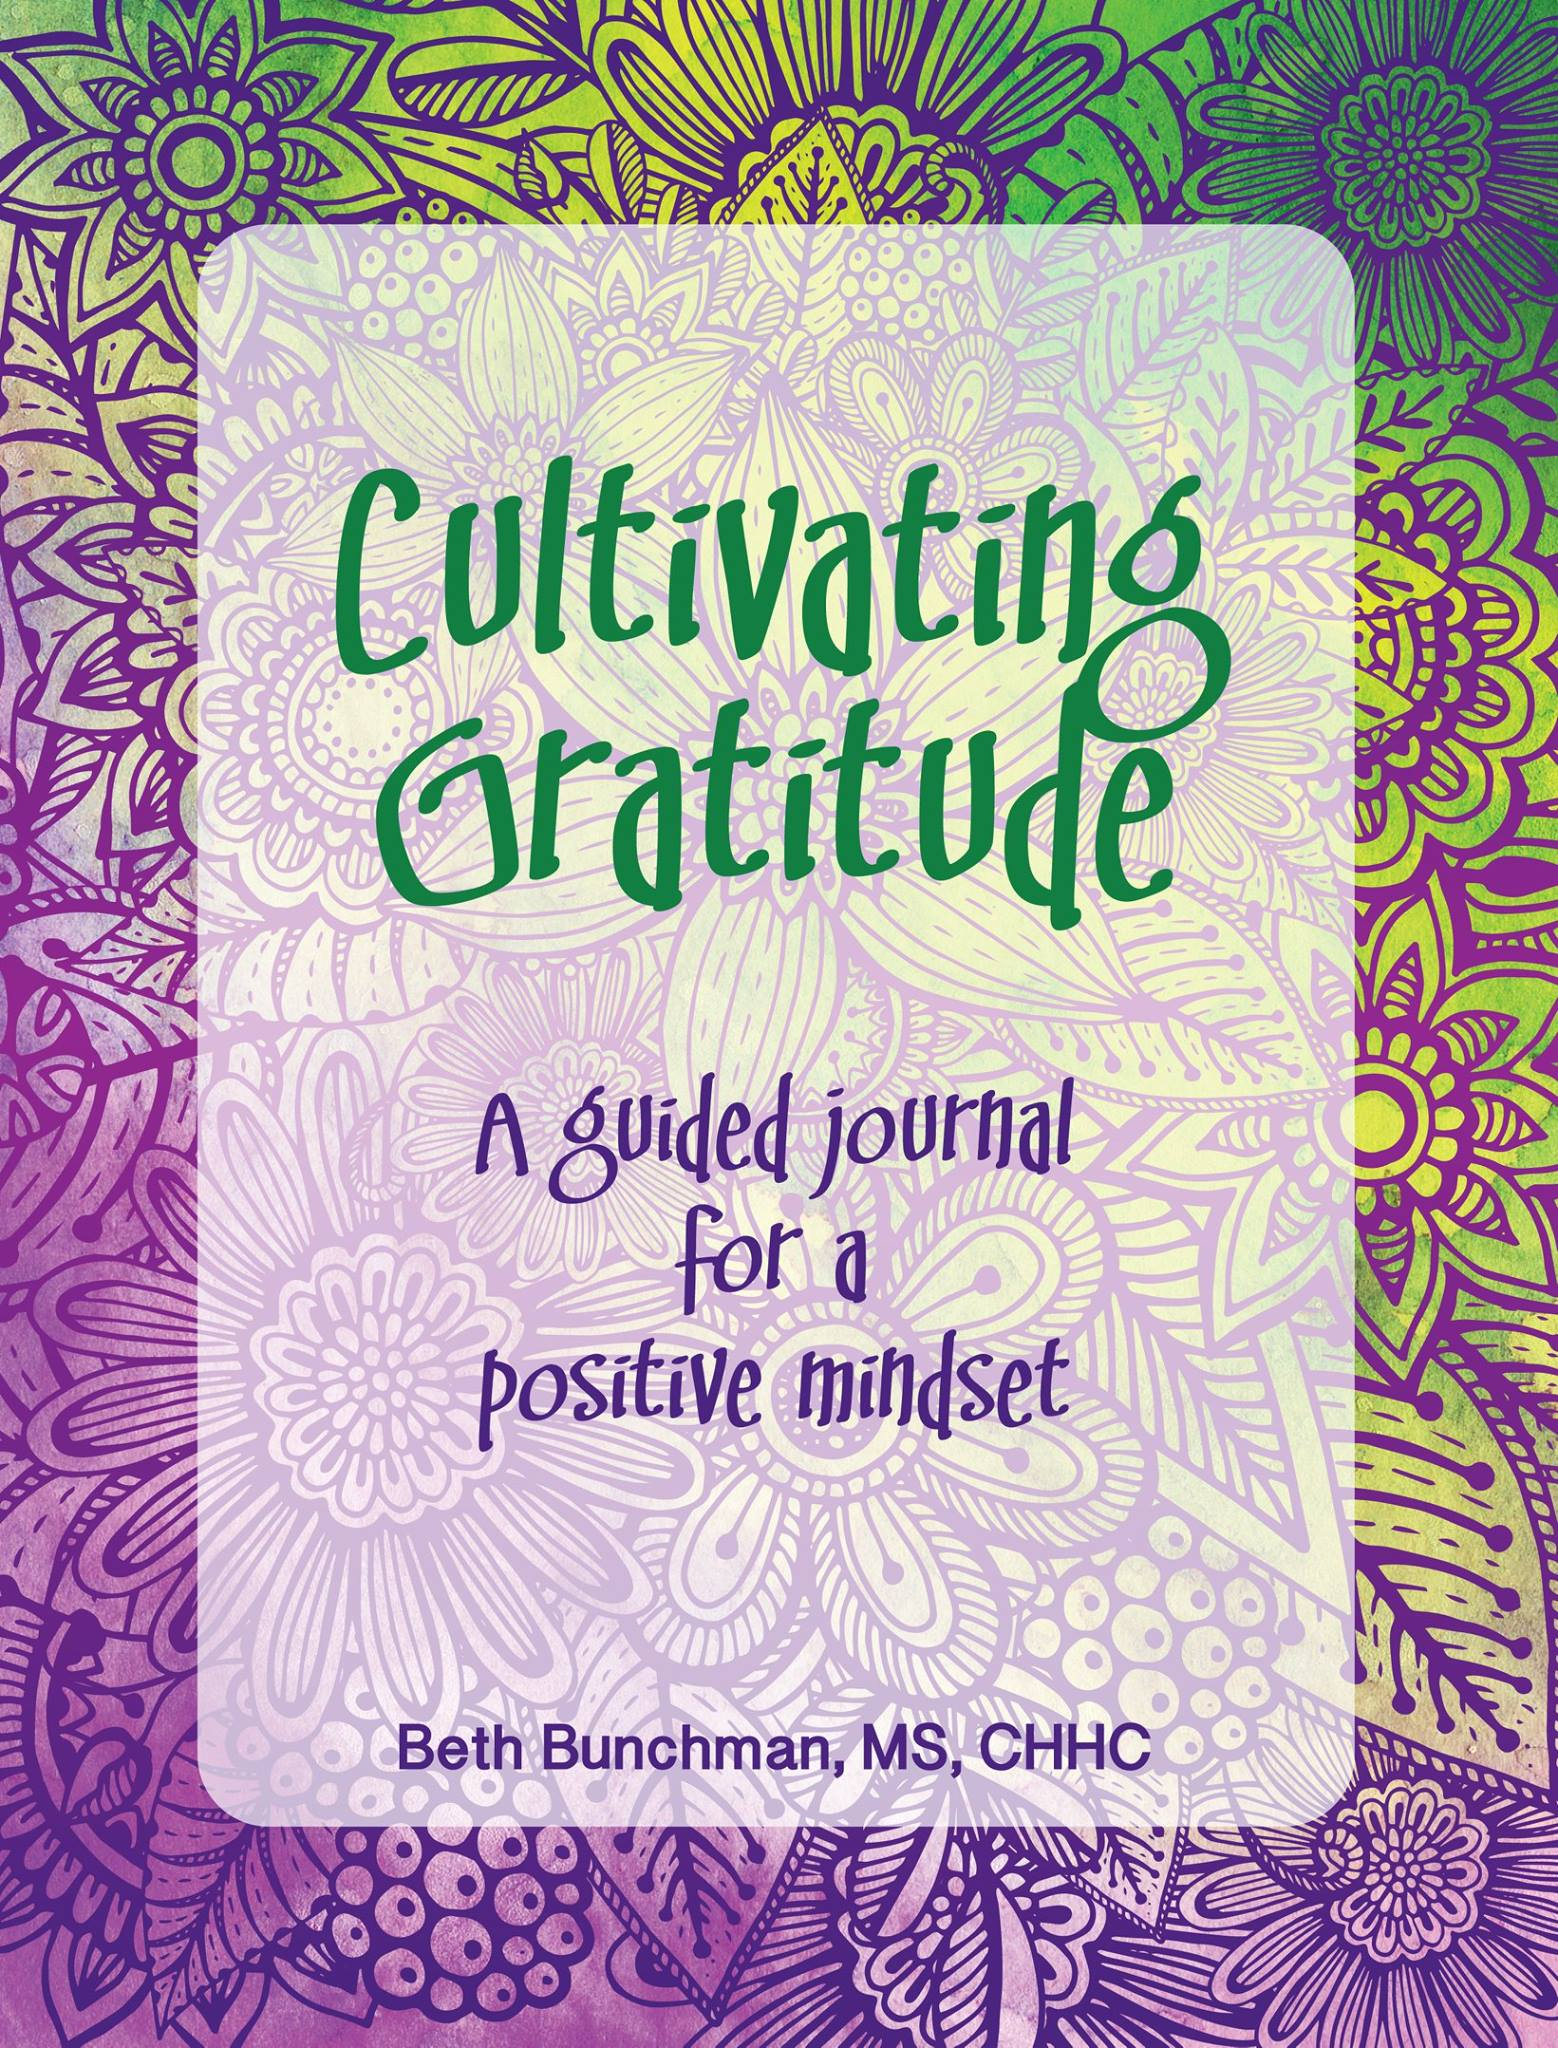 Cultivating_Gratitude-cover